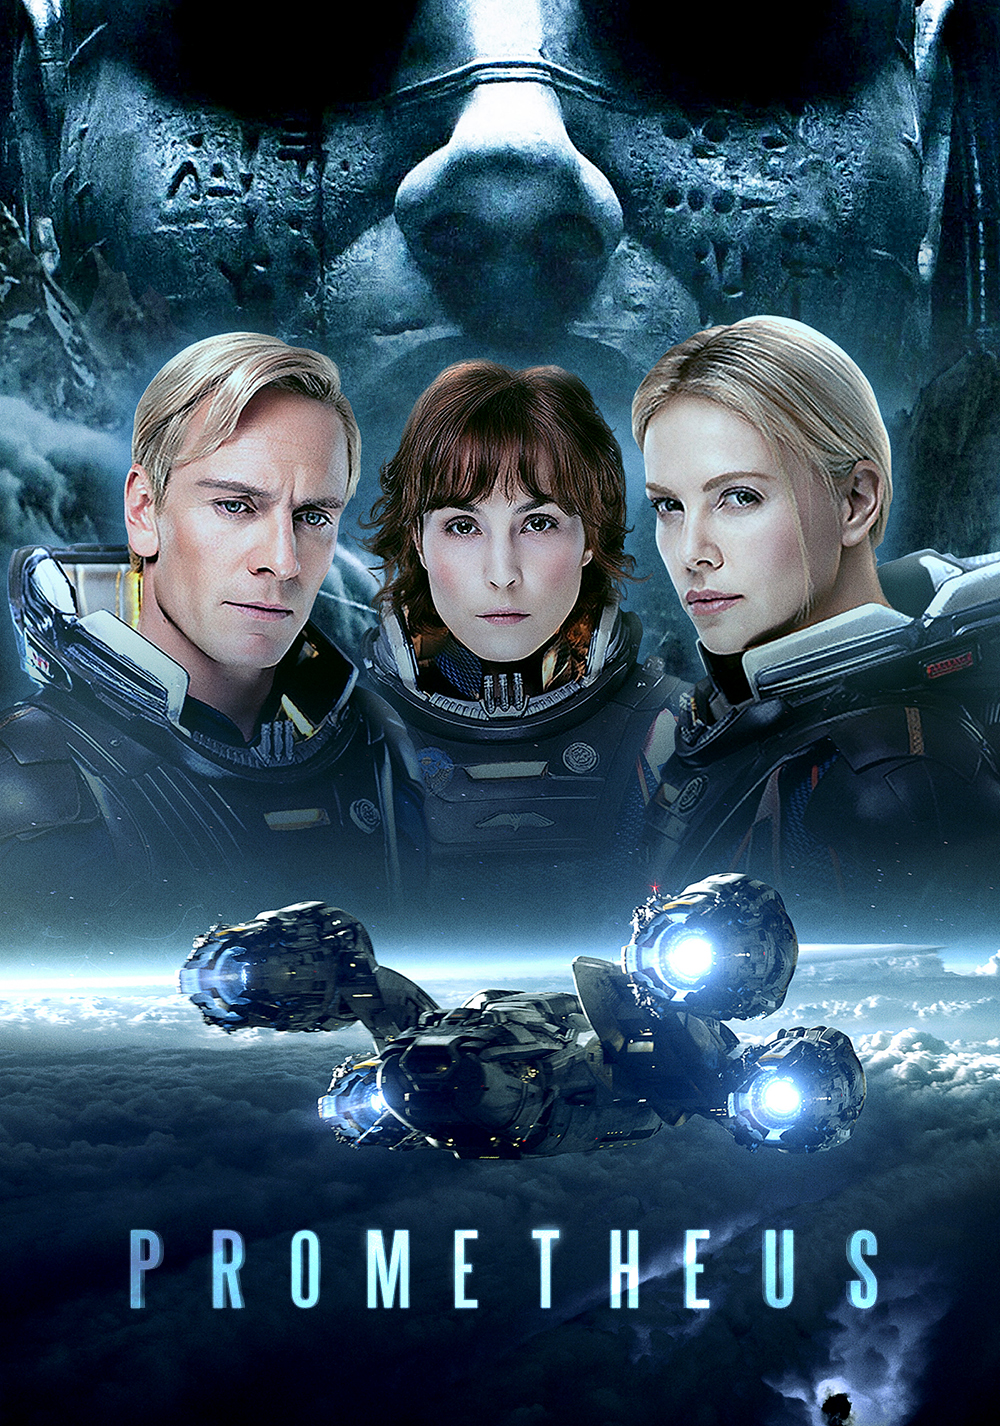 PROMETHEUS (2012) MOVIE TAMIL DUBBED HD